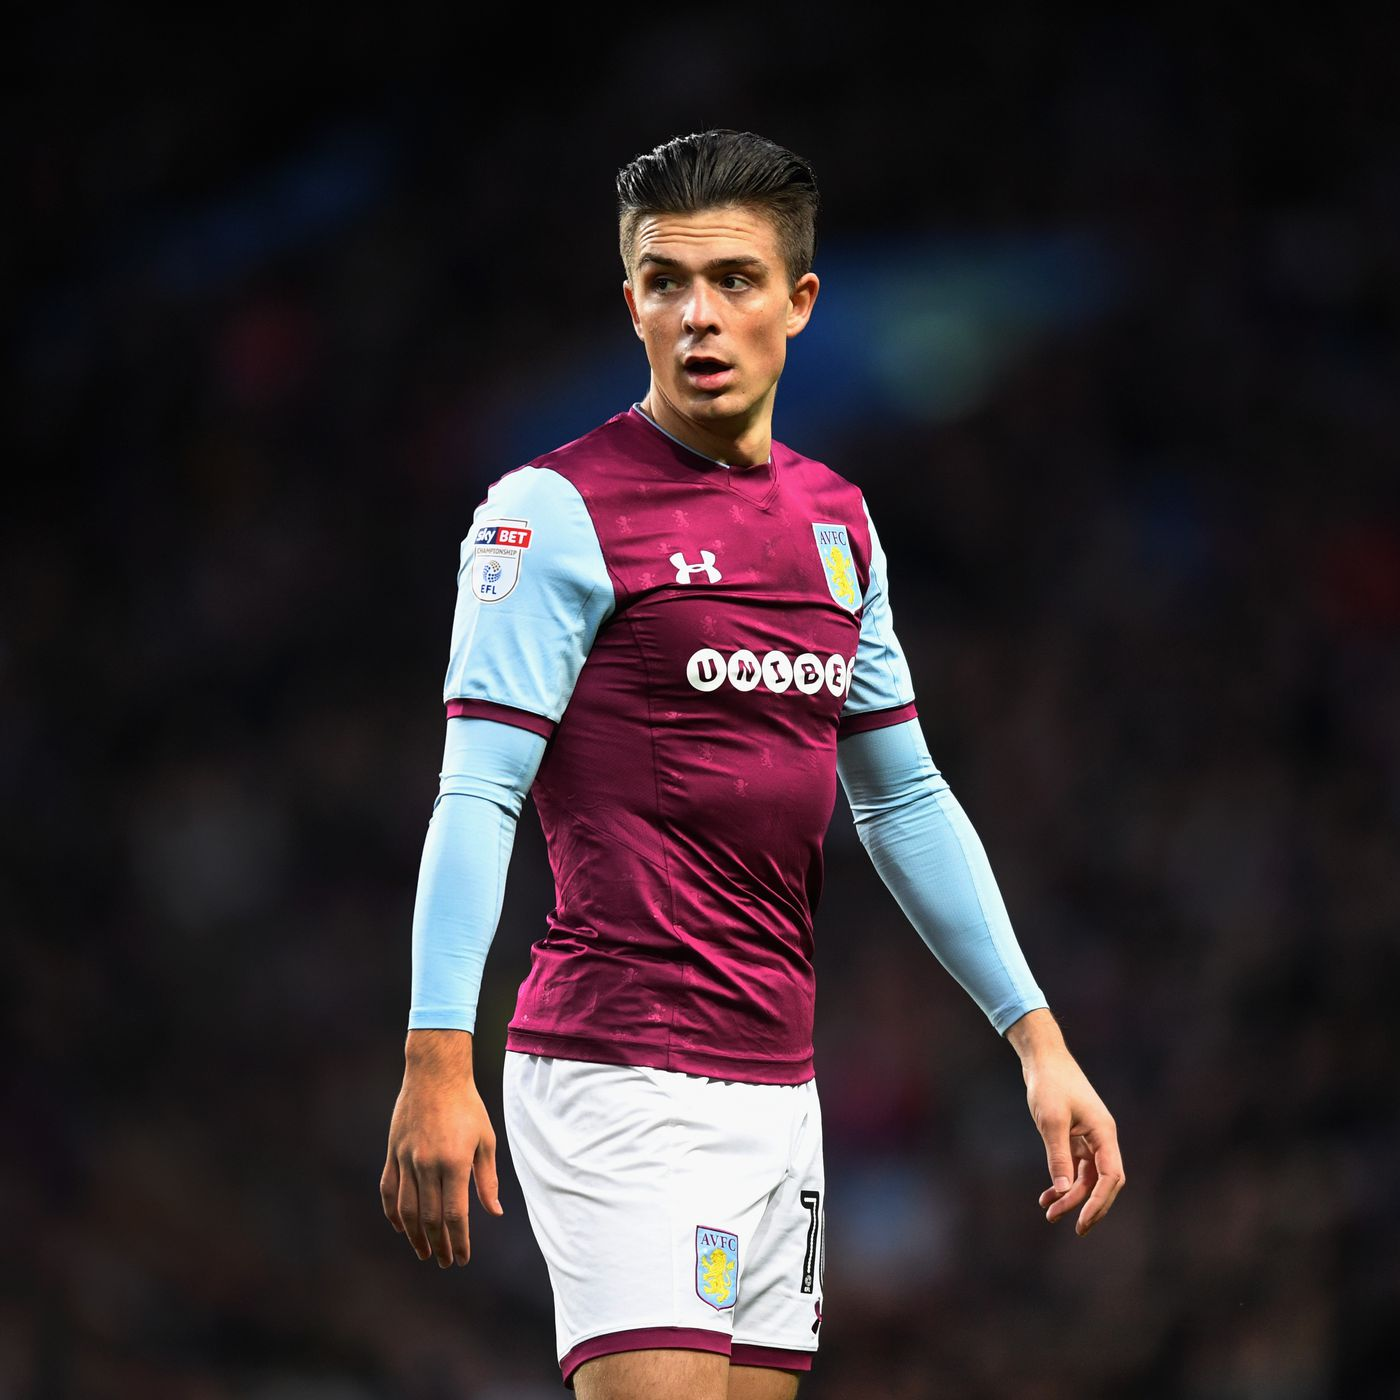 Aston Villa To Ditch Under Armour For Ground Breaking 18 19 Kit Deal 7500 To Holte